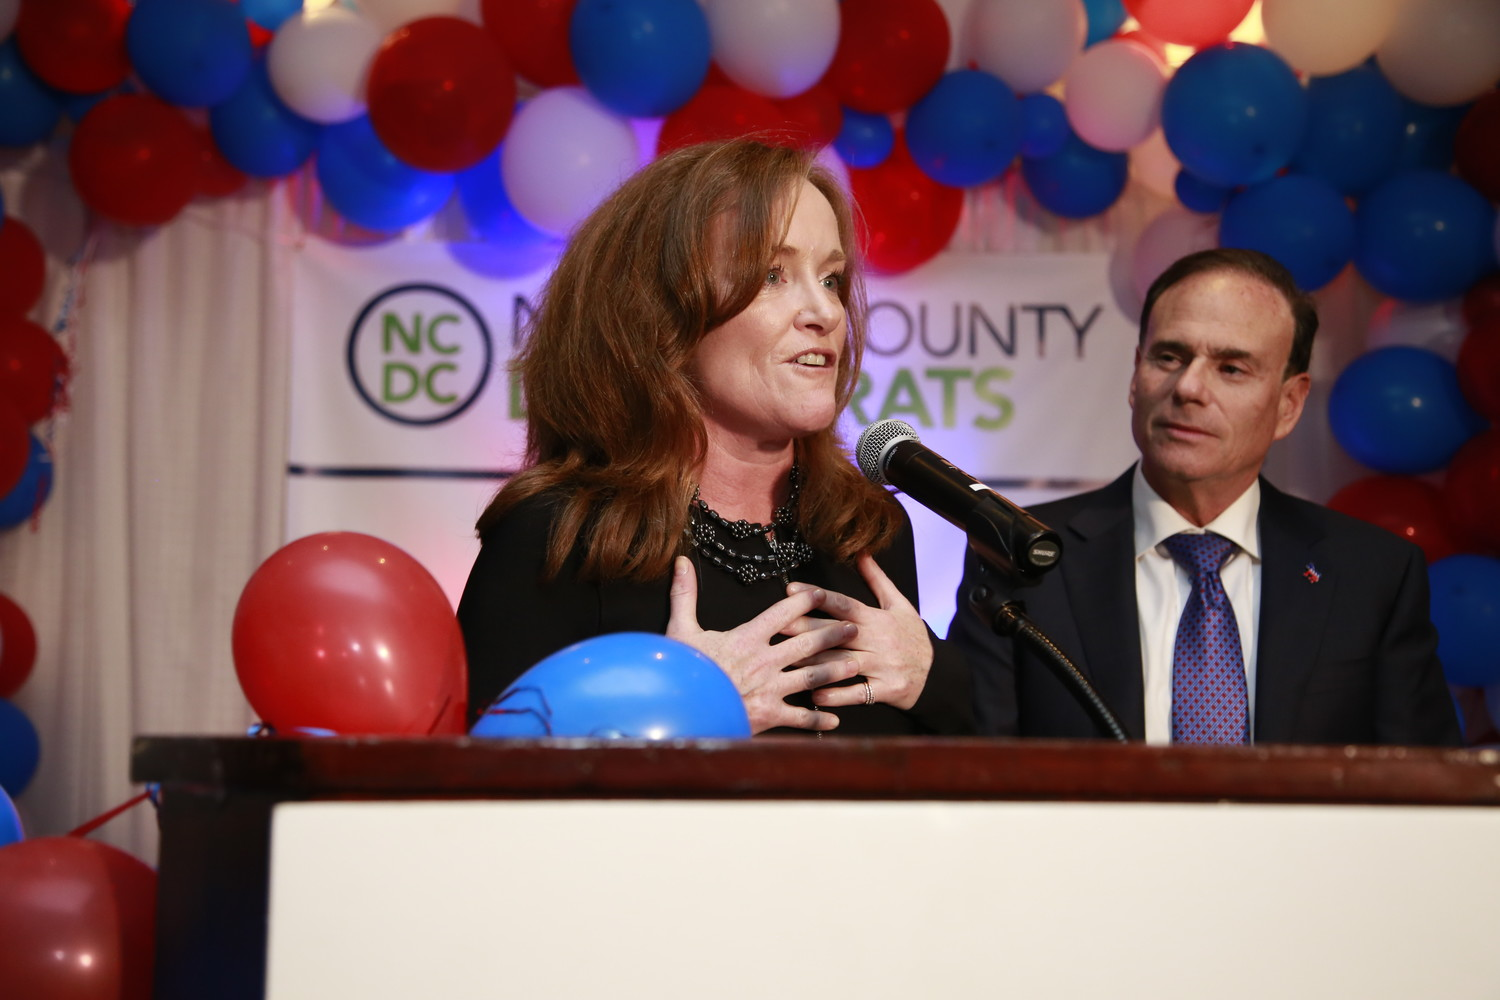 Incumbent U.S. Rep. Kathleen Rice, a Democrat from Garden City, won a third term representing New York's 4th Congressional District, defeating Republican Ameer Benno.